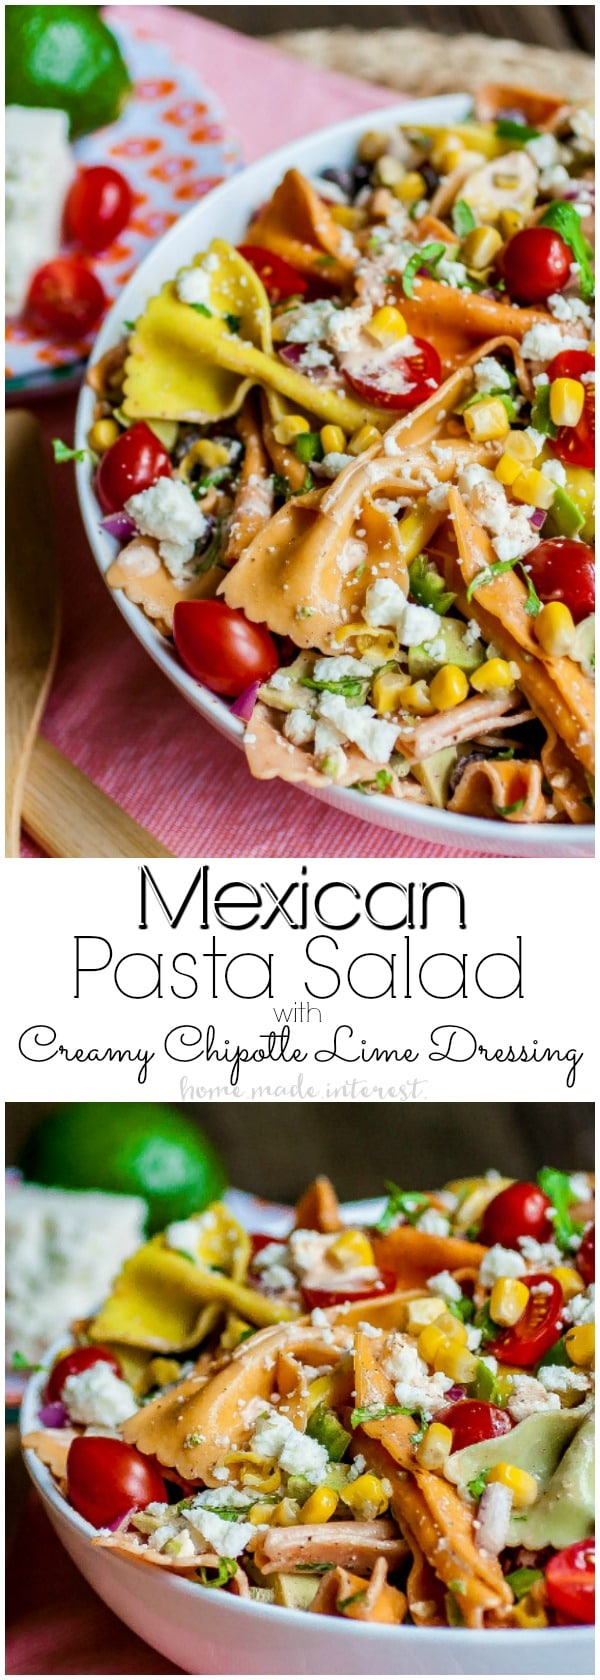 Mexican Pasta Salad | Mutli-colored pasta and bold southwest flavors make this easy Mexican Pasta Salad an awesome pasta salad recipe for Cinco de Mayo. If you're looking for Cinco de Mayo recipes you can make ahead of time and serve at your Cinco de Mayo party this beautiful southwest pasta salad is it! It makes a delicious summer side dish for summer BBQs and picnics.